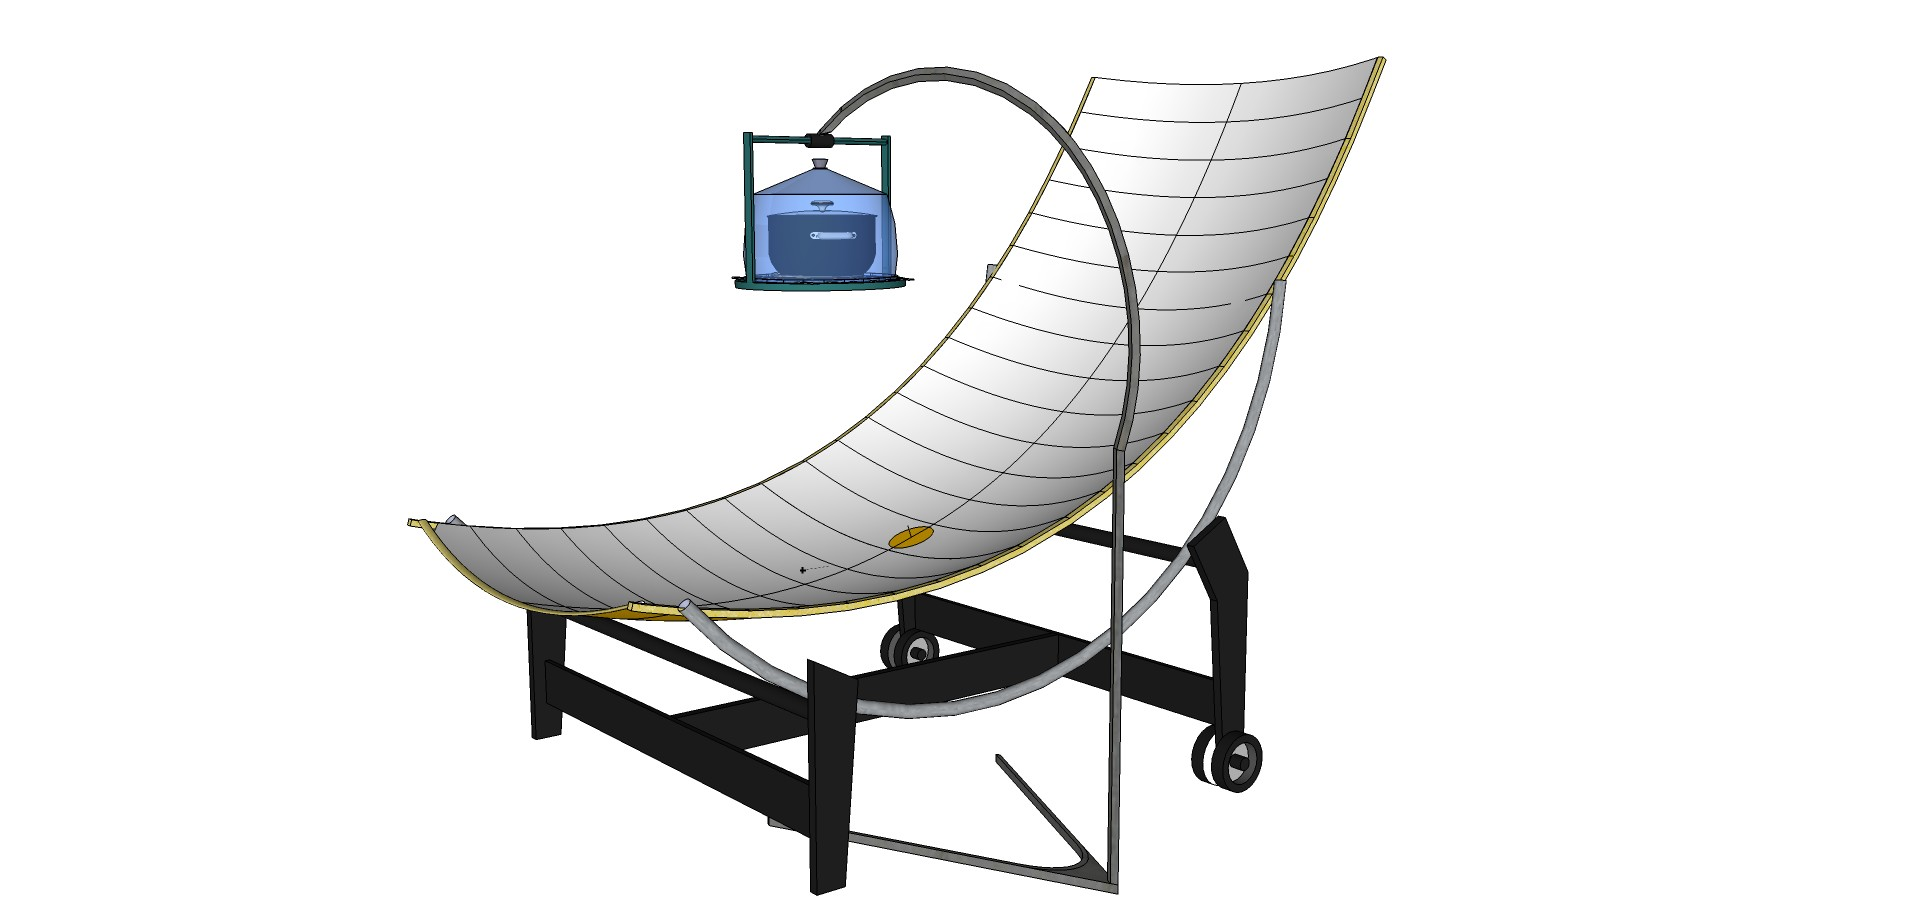 Parabolic solar cooker with circular tilting feature